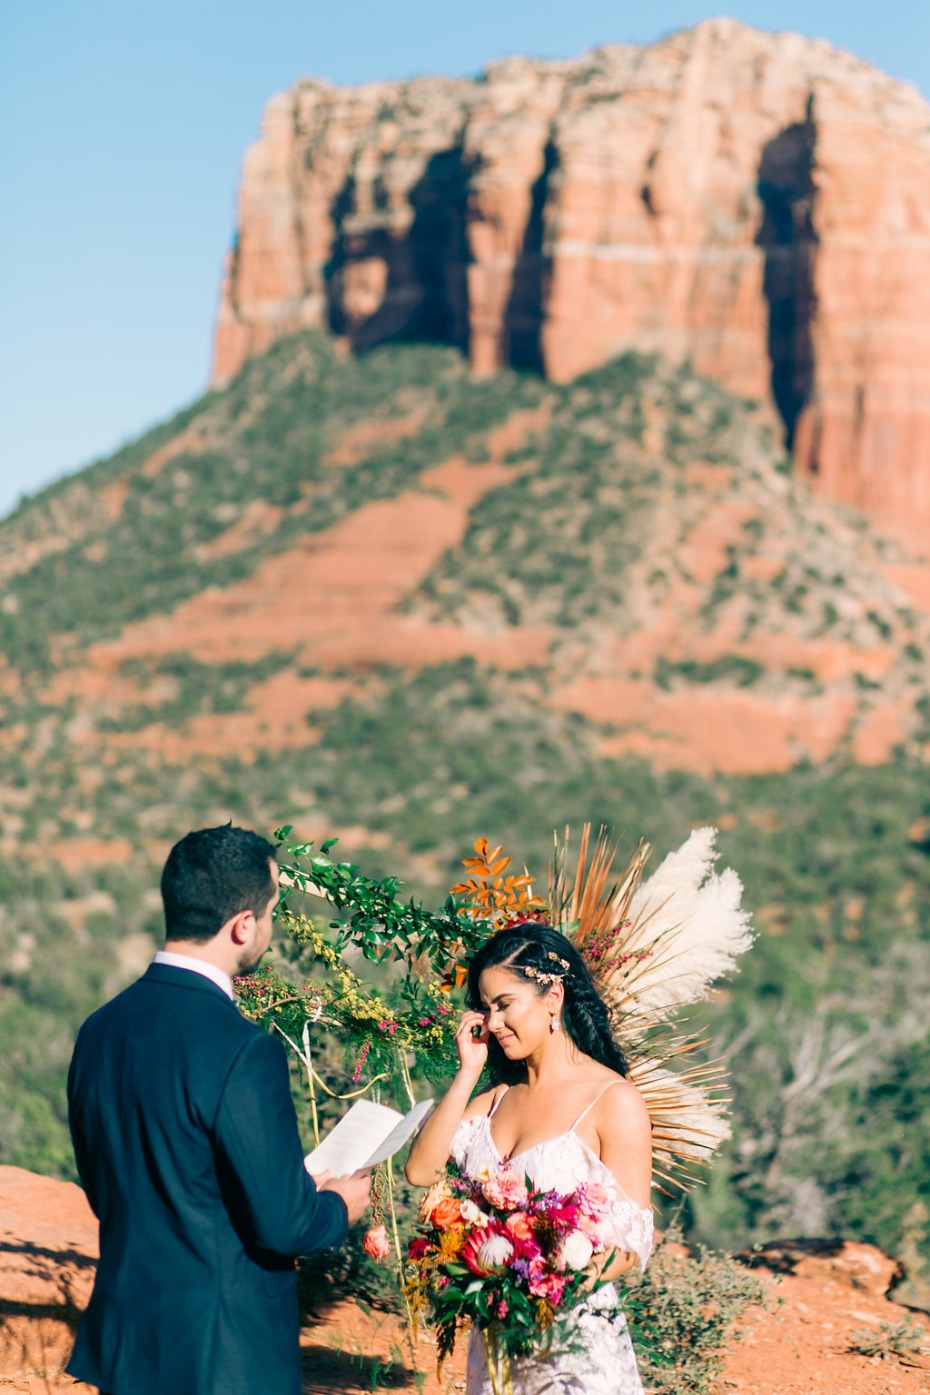 wedding ceremony in Arizona